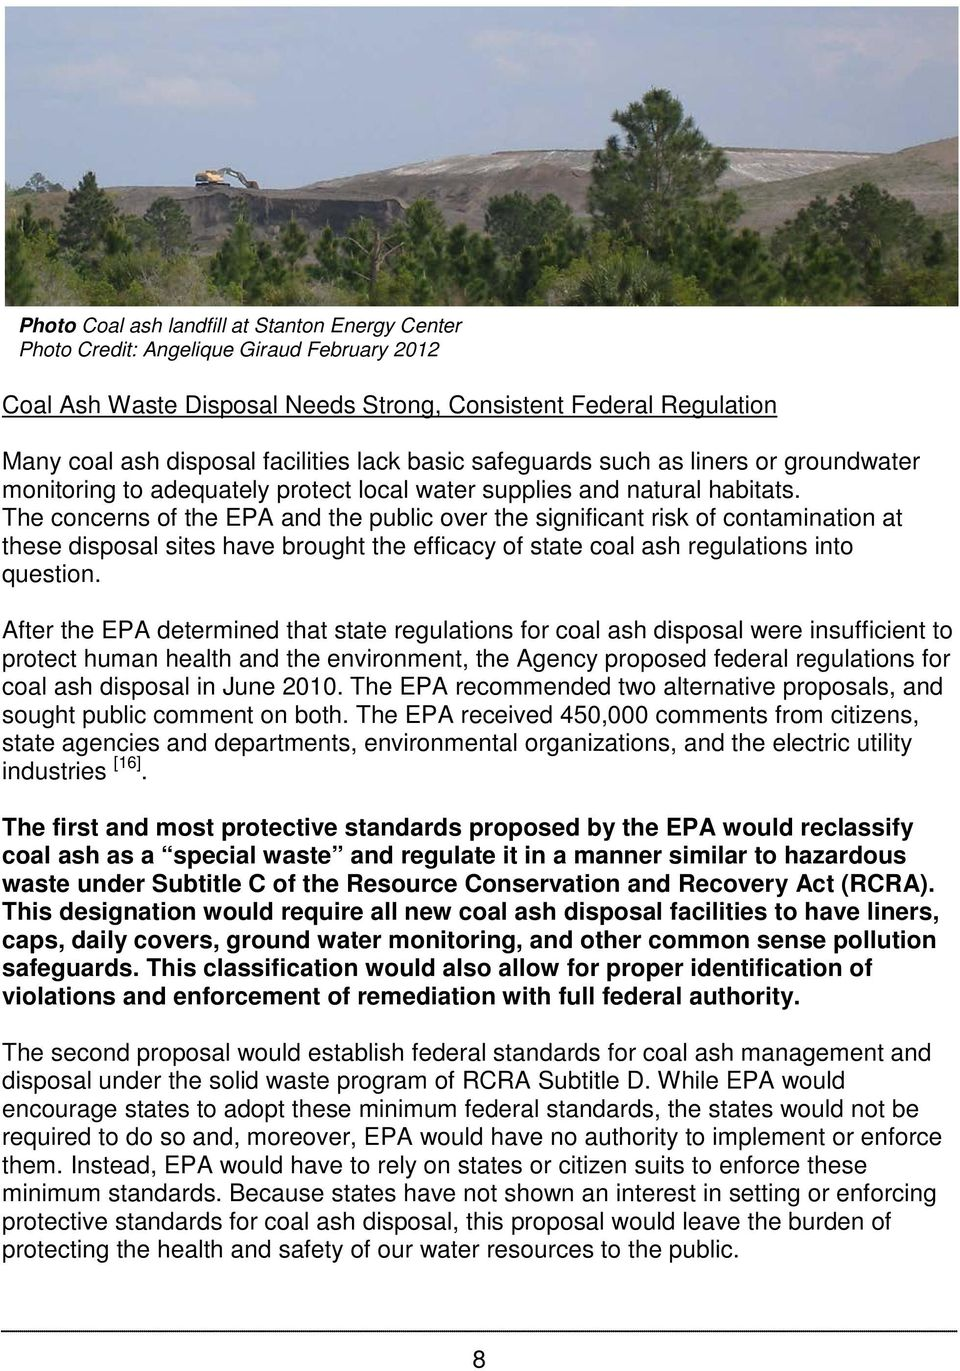 The concerns of the EPA and the public over the significant risk of contamination at these disposal sites have brought the efficacy of state coal ash regulations into question.